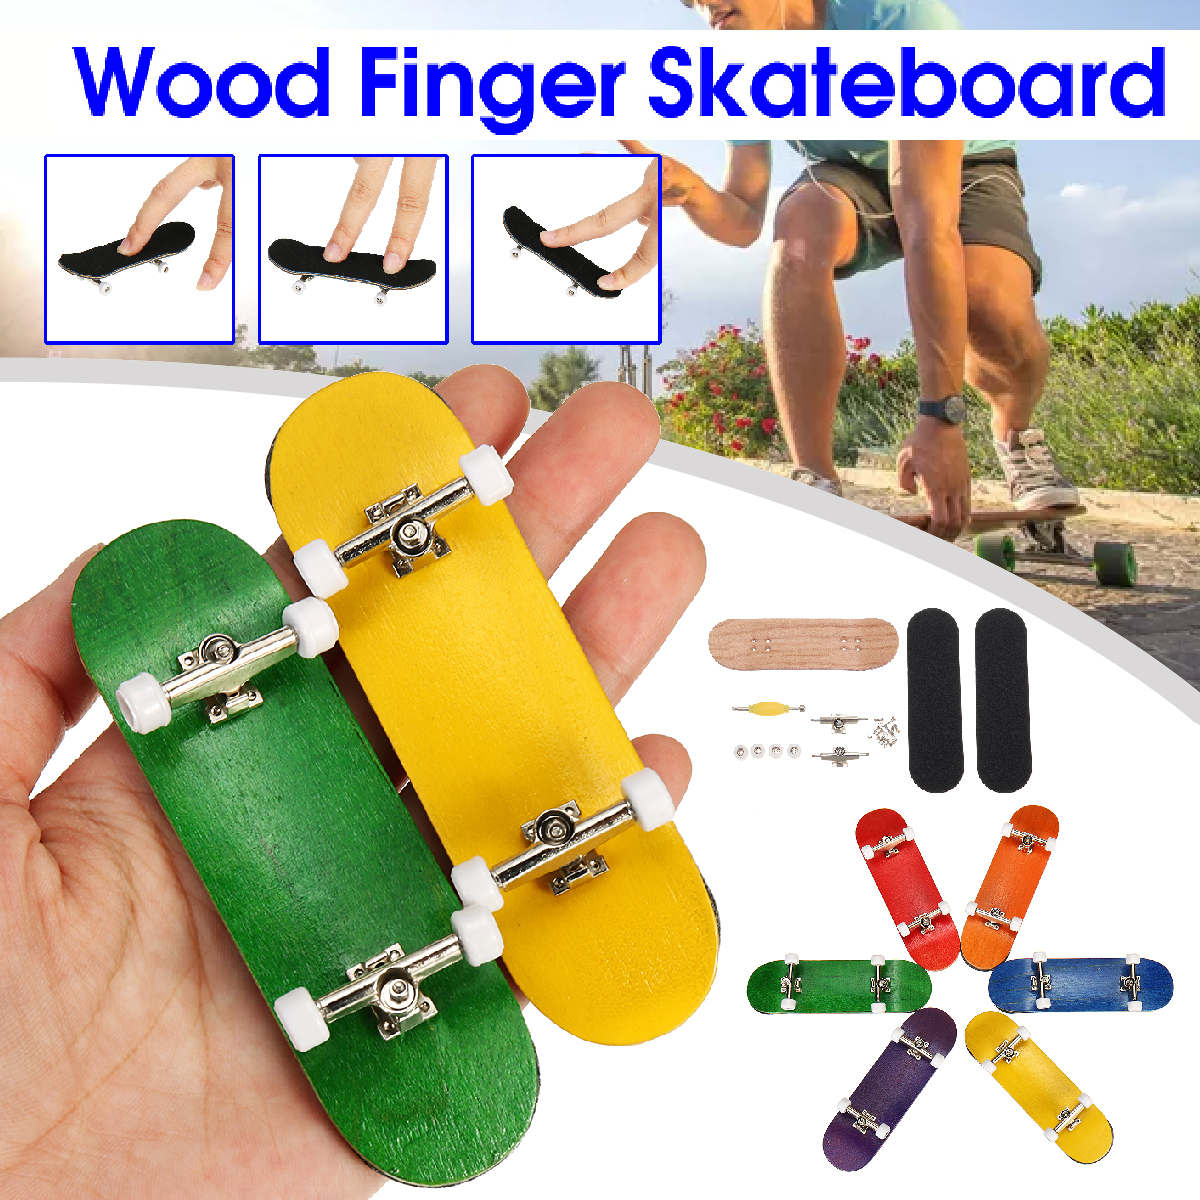 Kids Children Adult Toy Wood Fingerboard Finger Skateboard Basic Complete Skate Board Bearing Wheel Nuts